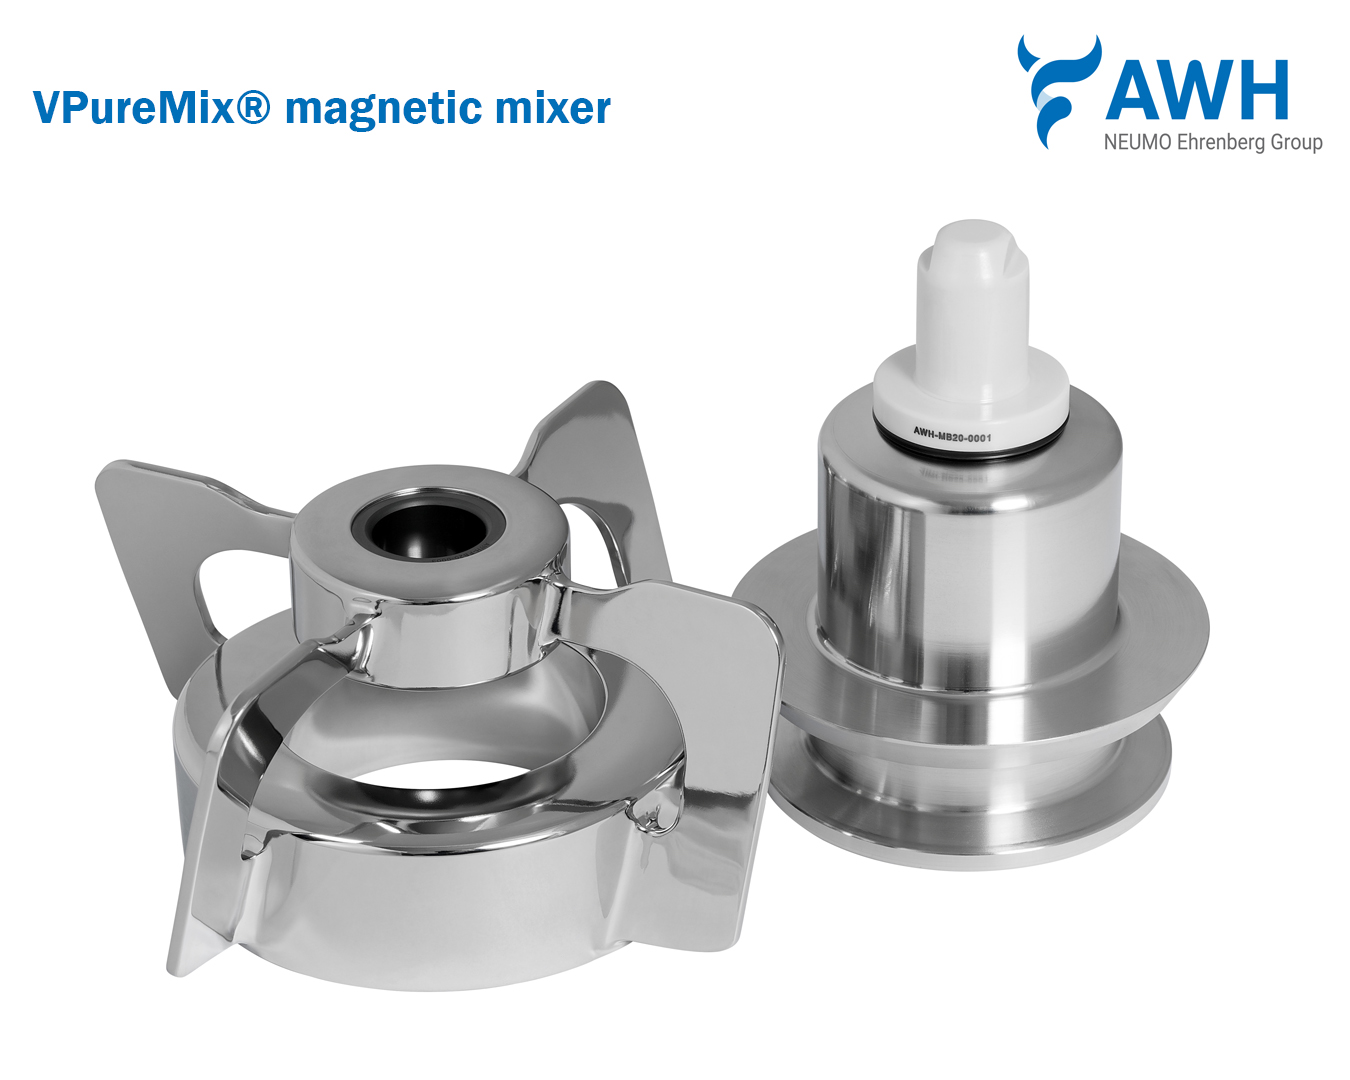 Product picture of Magnetic stirrer VPureMix®